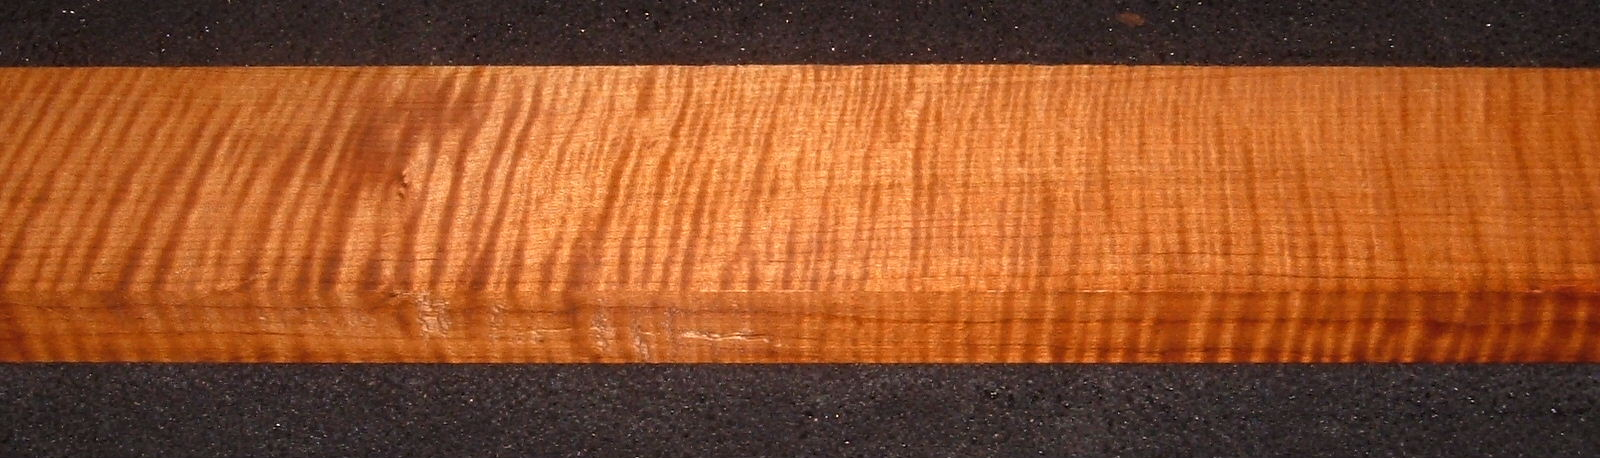 QRM2006-183, 15/16x3x46, Quartersawn Roasted Curly Maple